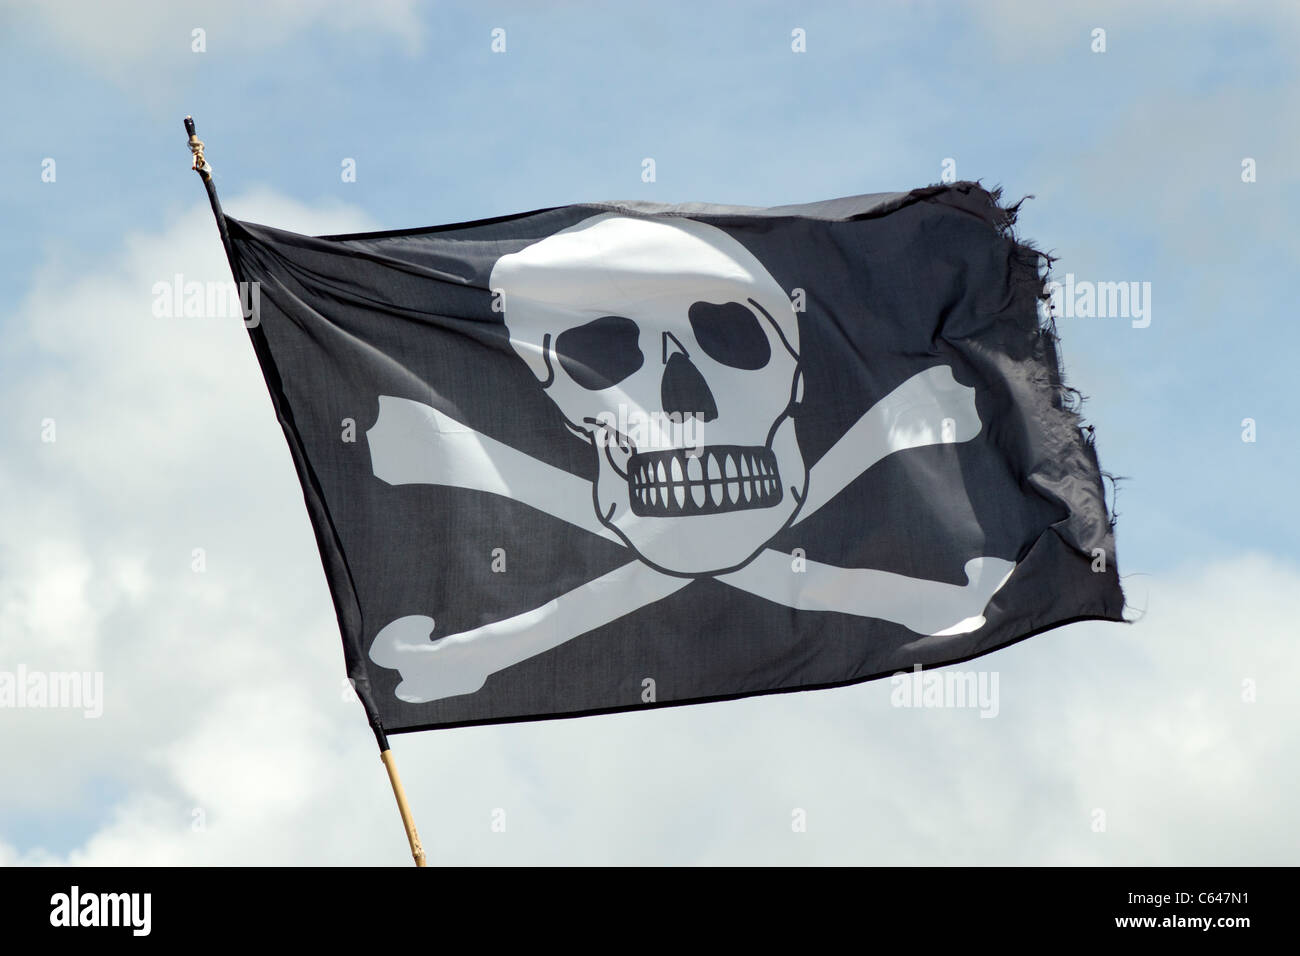 The Jolly Roger pirates ship skull and crossbones flag. - Stock Image